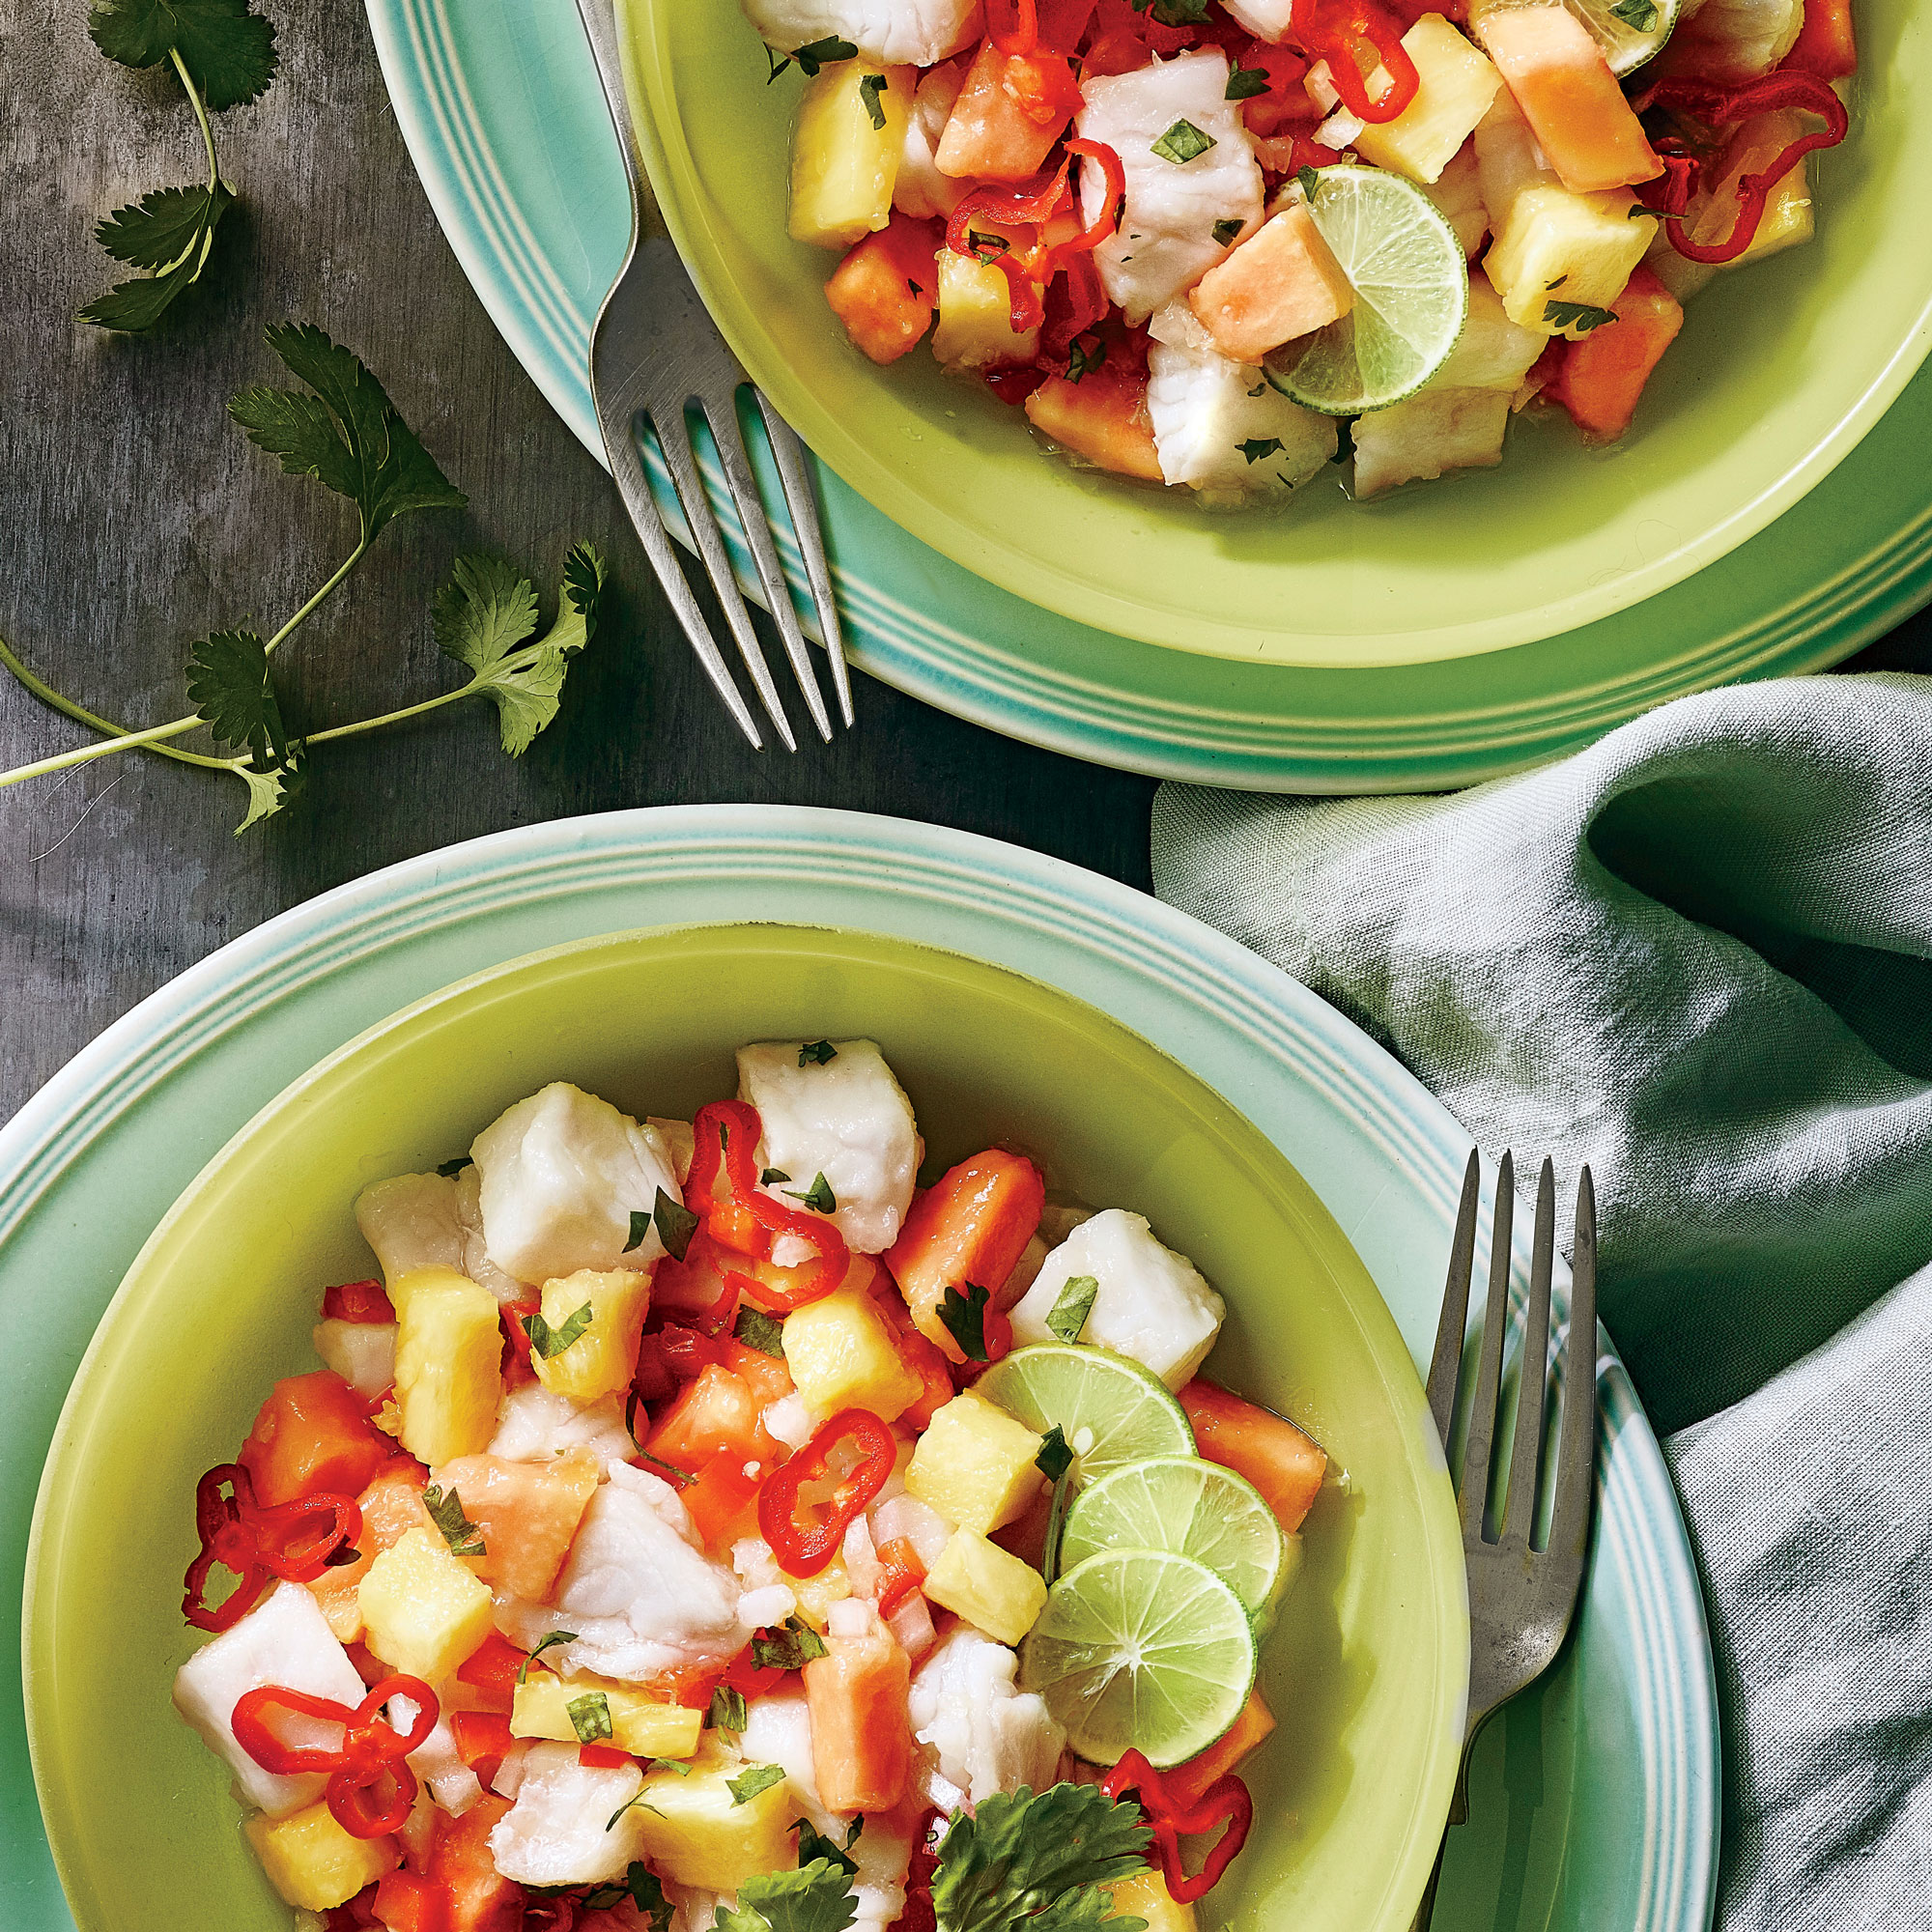 Lime and grapefruit juice pair deliciously with mango, pineapple, and red bell pepper in this island-inspired combo.